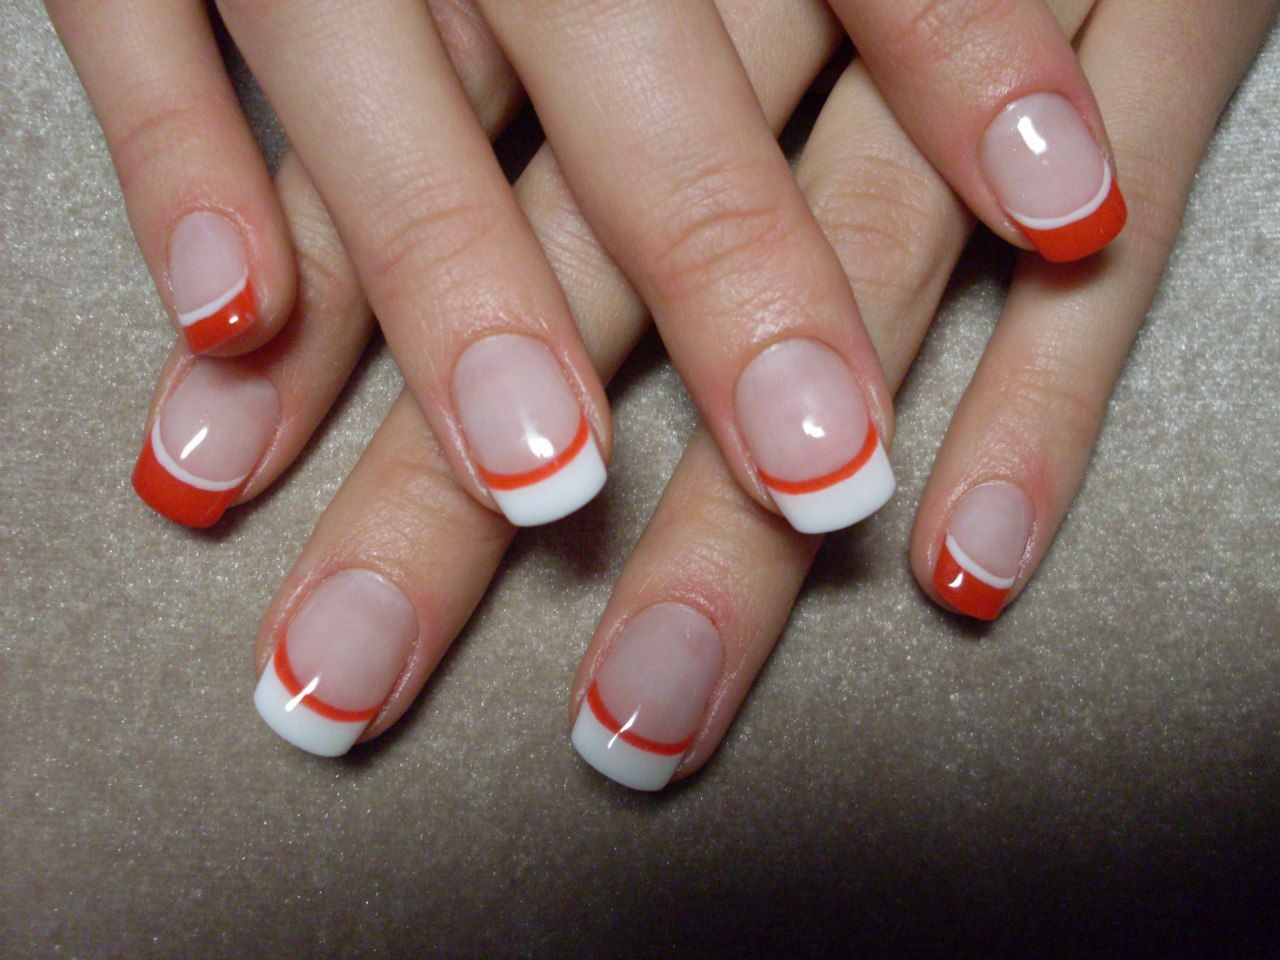 french manicure different colors in gallery | Manicure | Pinterest ...